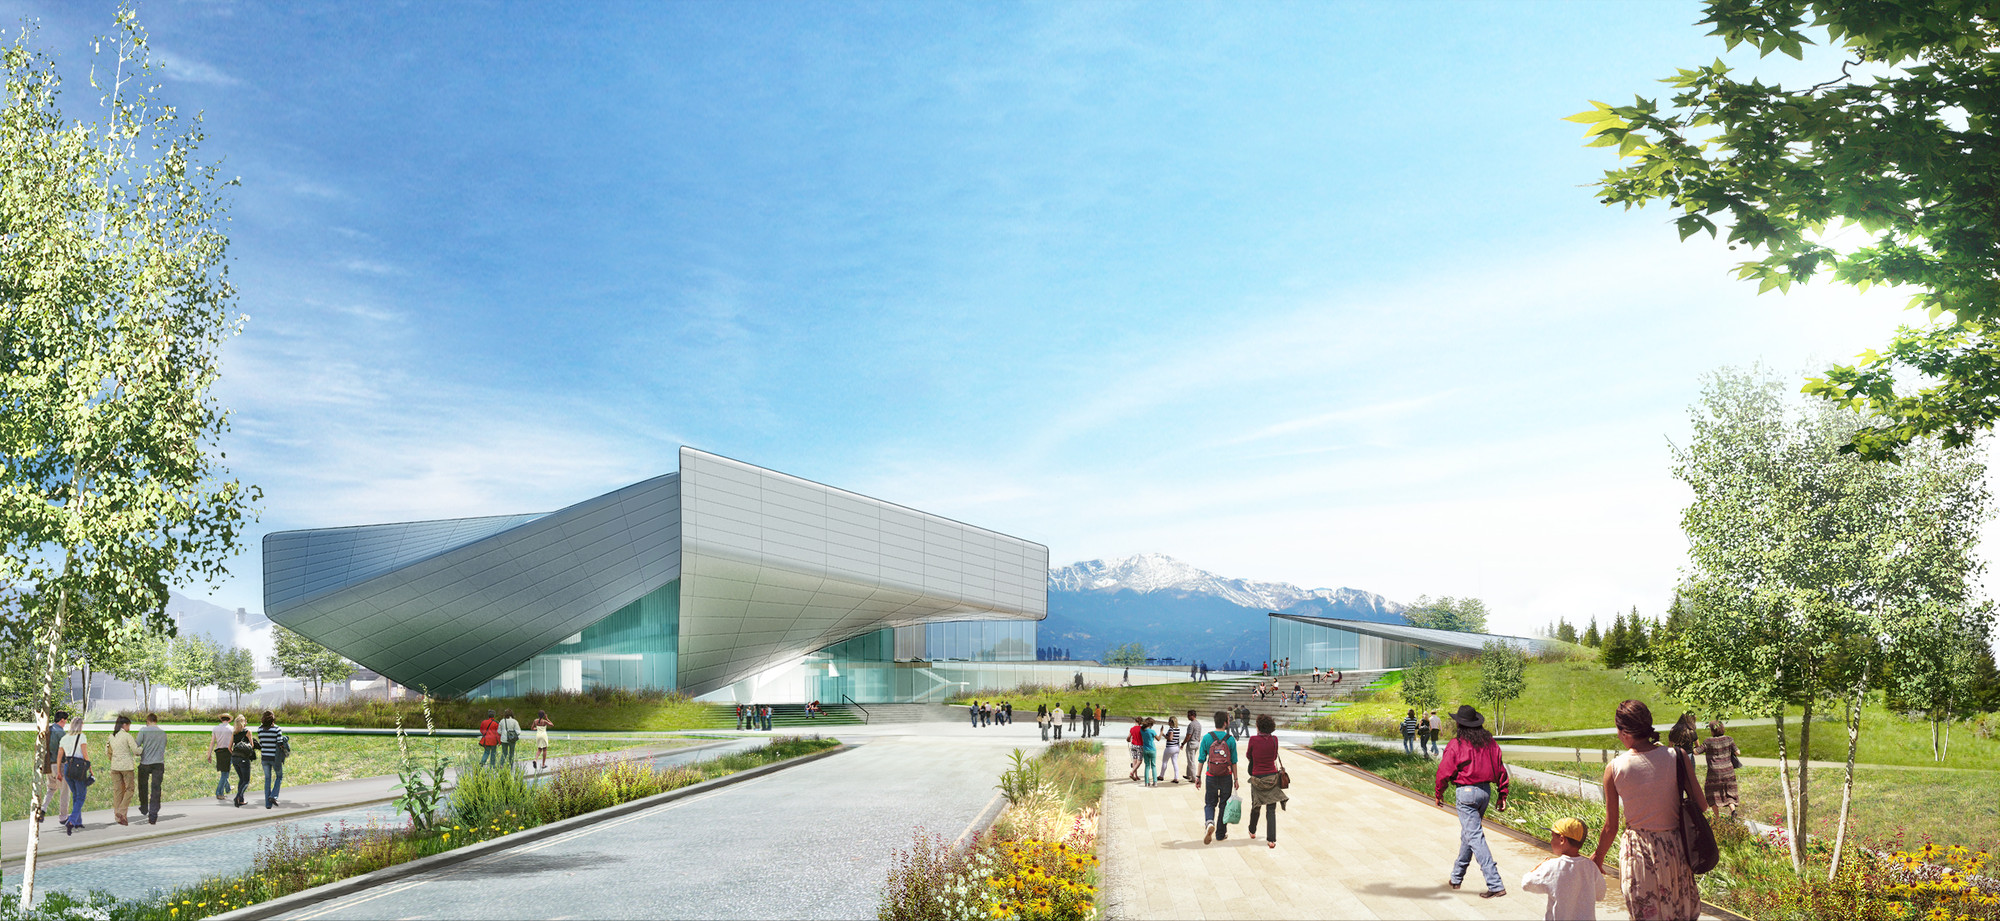 Diller Scofidio + Renfro Reveals Concept Designs For US Olympic Museum, Courtesy of Diller Scofidio + Renfro